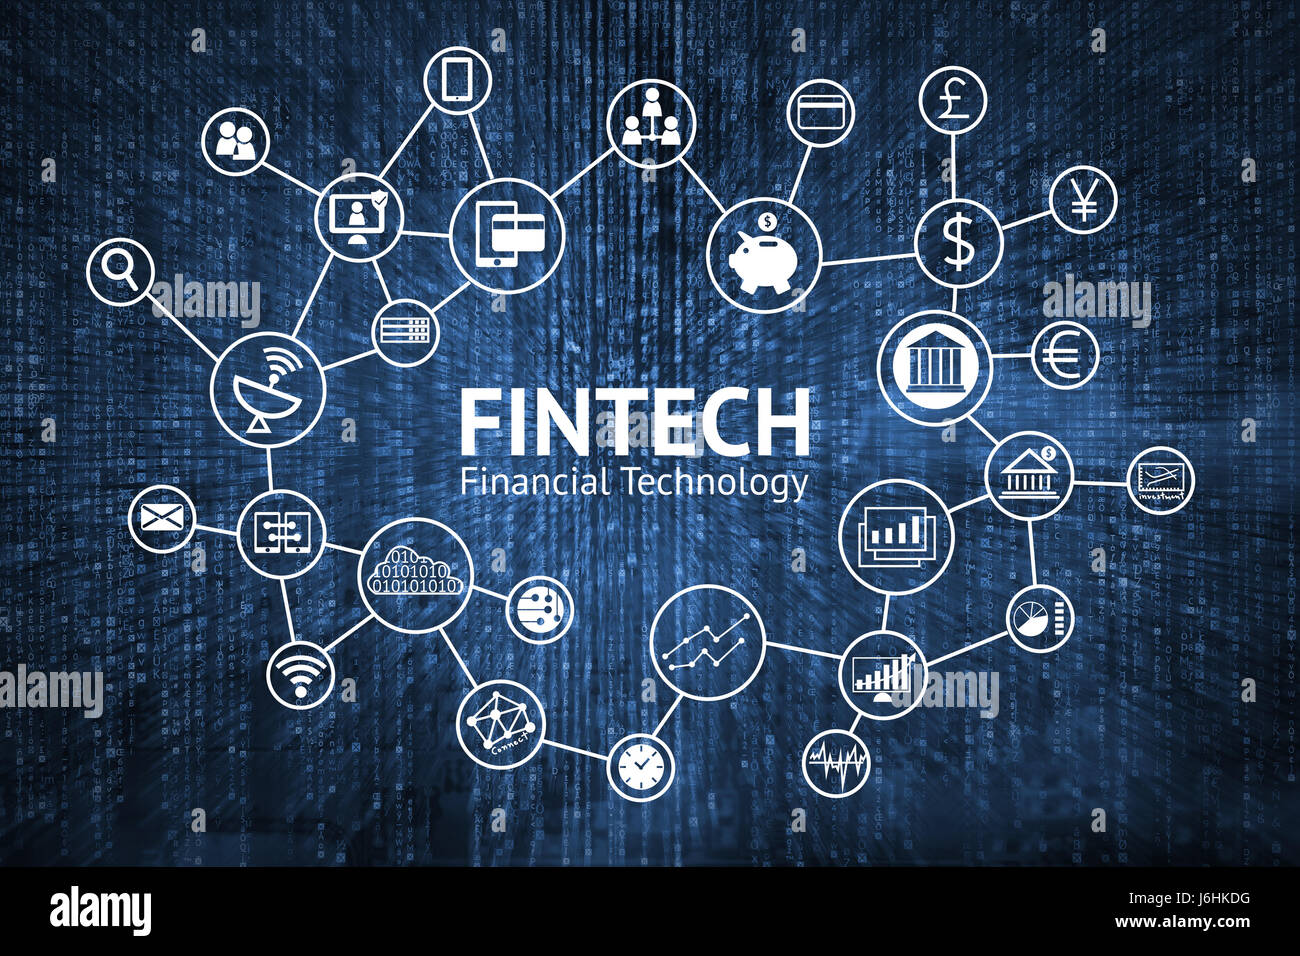 Fintech Internet Concept. text and Investment Financial Technology icons with blue matrix coded background - Stock Image